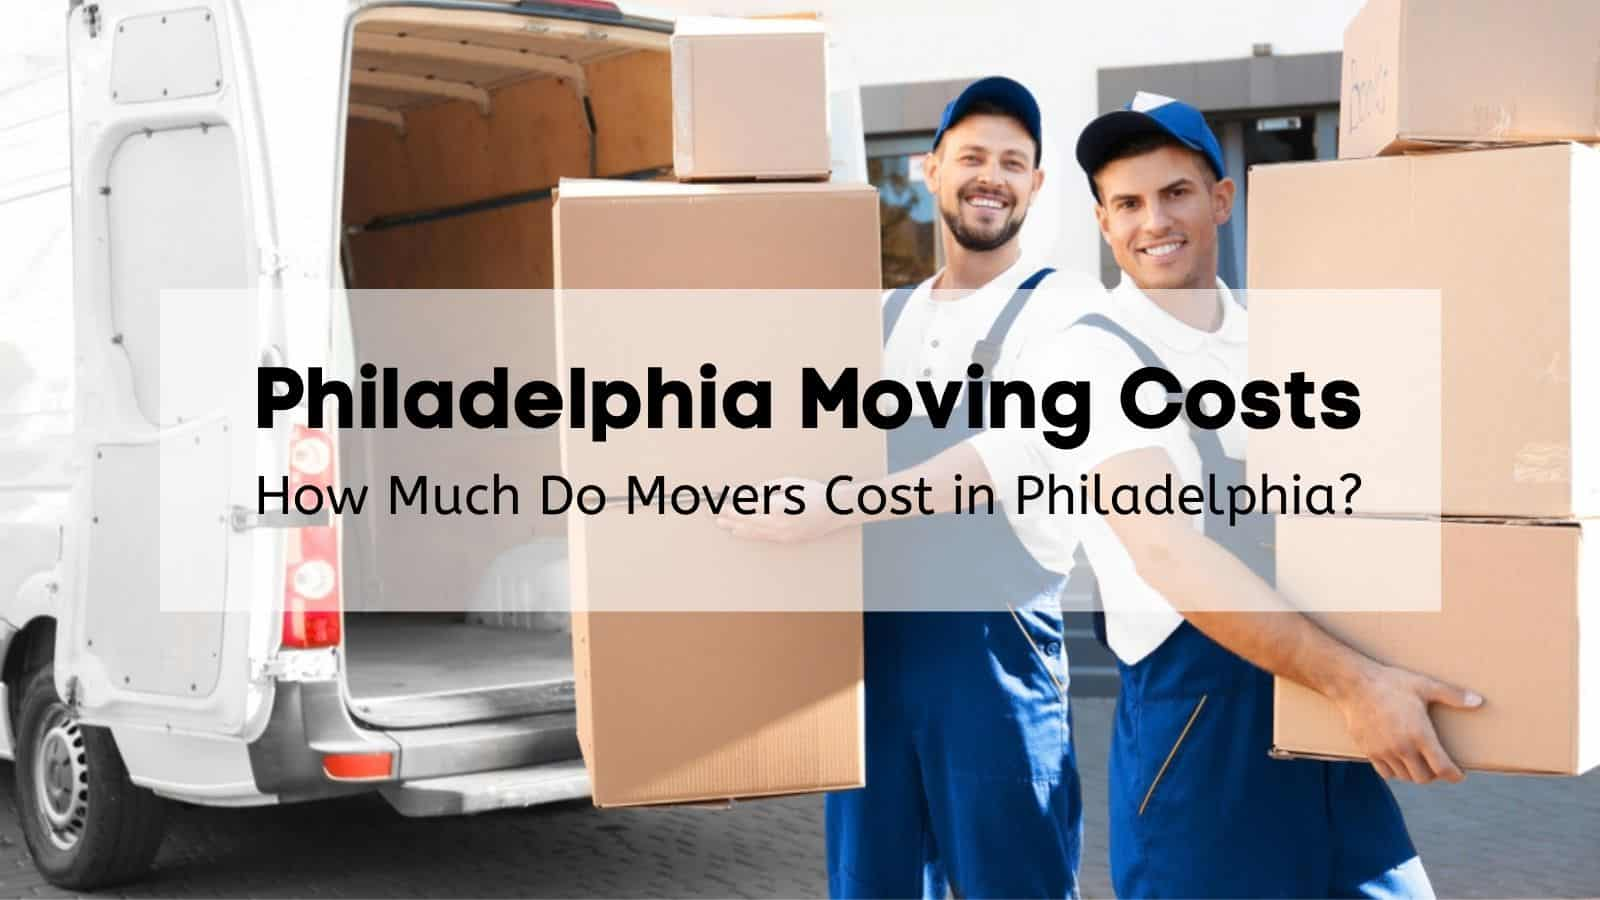 Philadelphia Moving Costs - How Much Do Movers Cost in Philadelphia